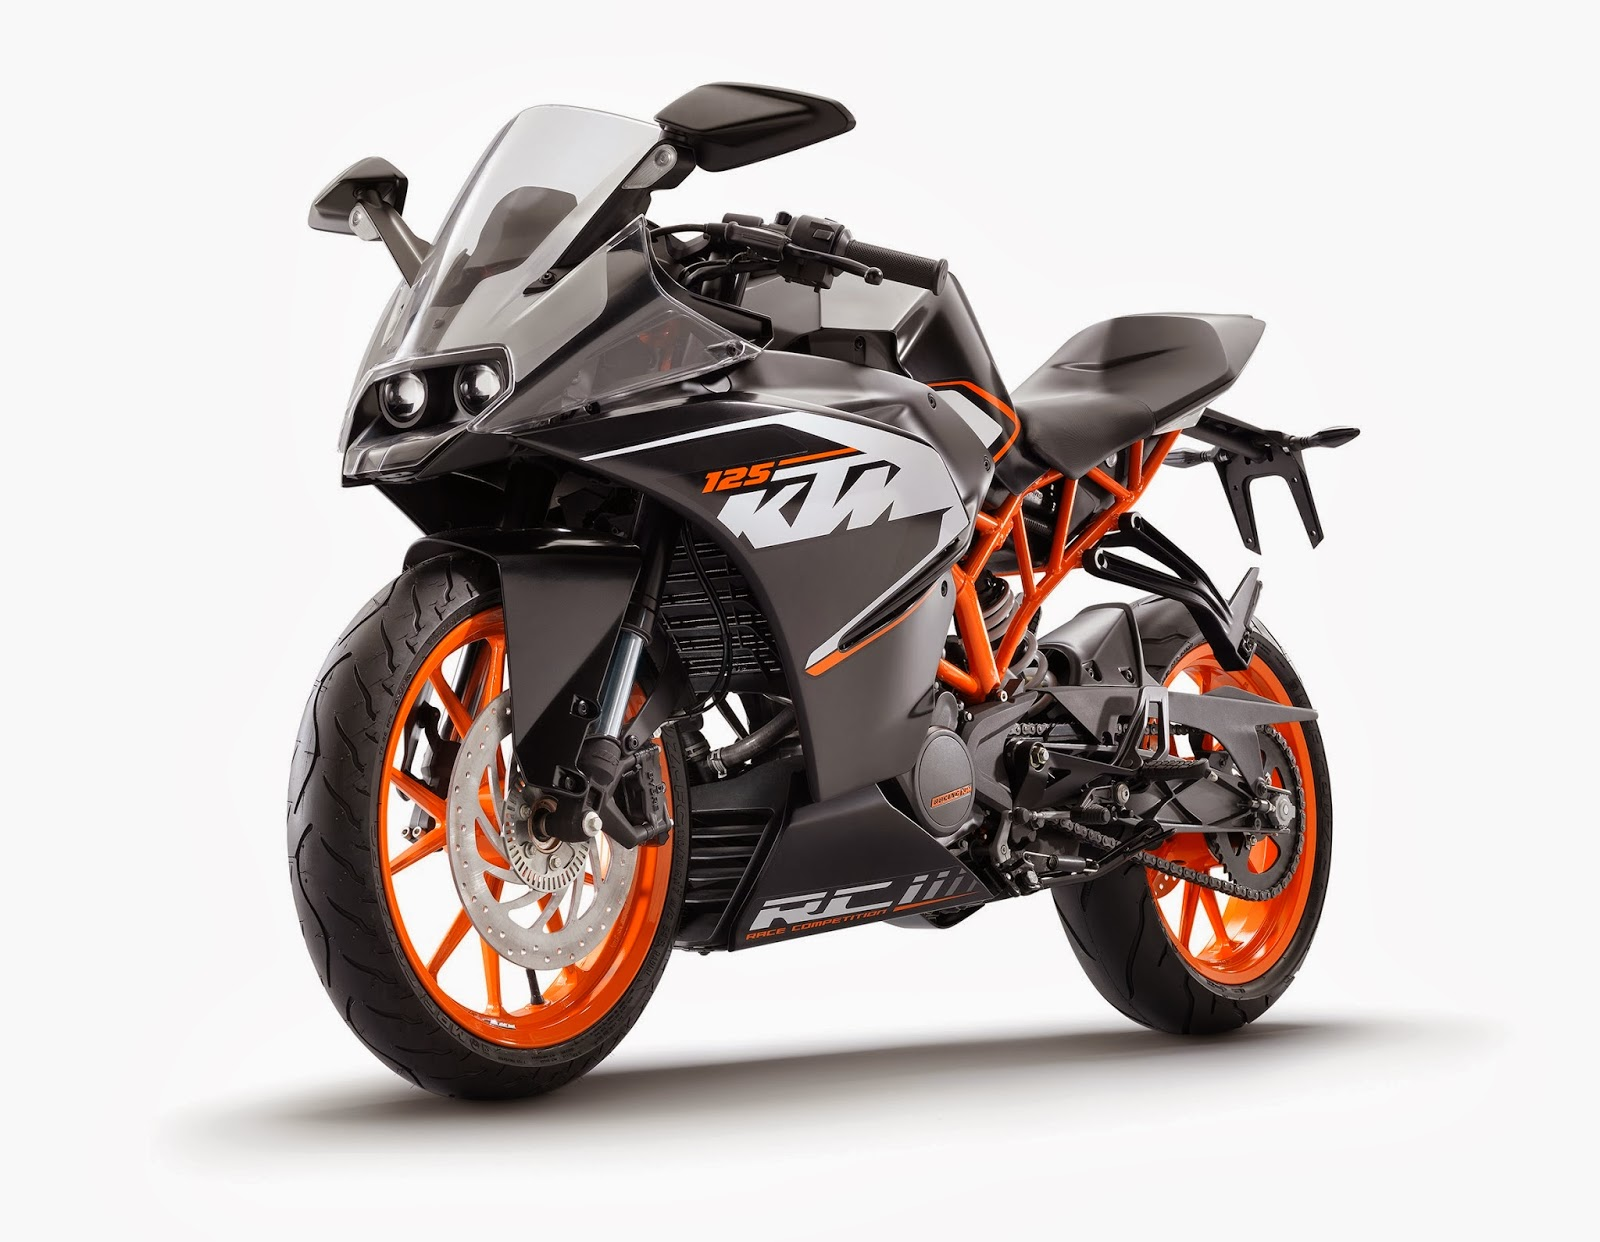 KTM RC 125200390 30 High Resolution Photos Released